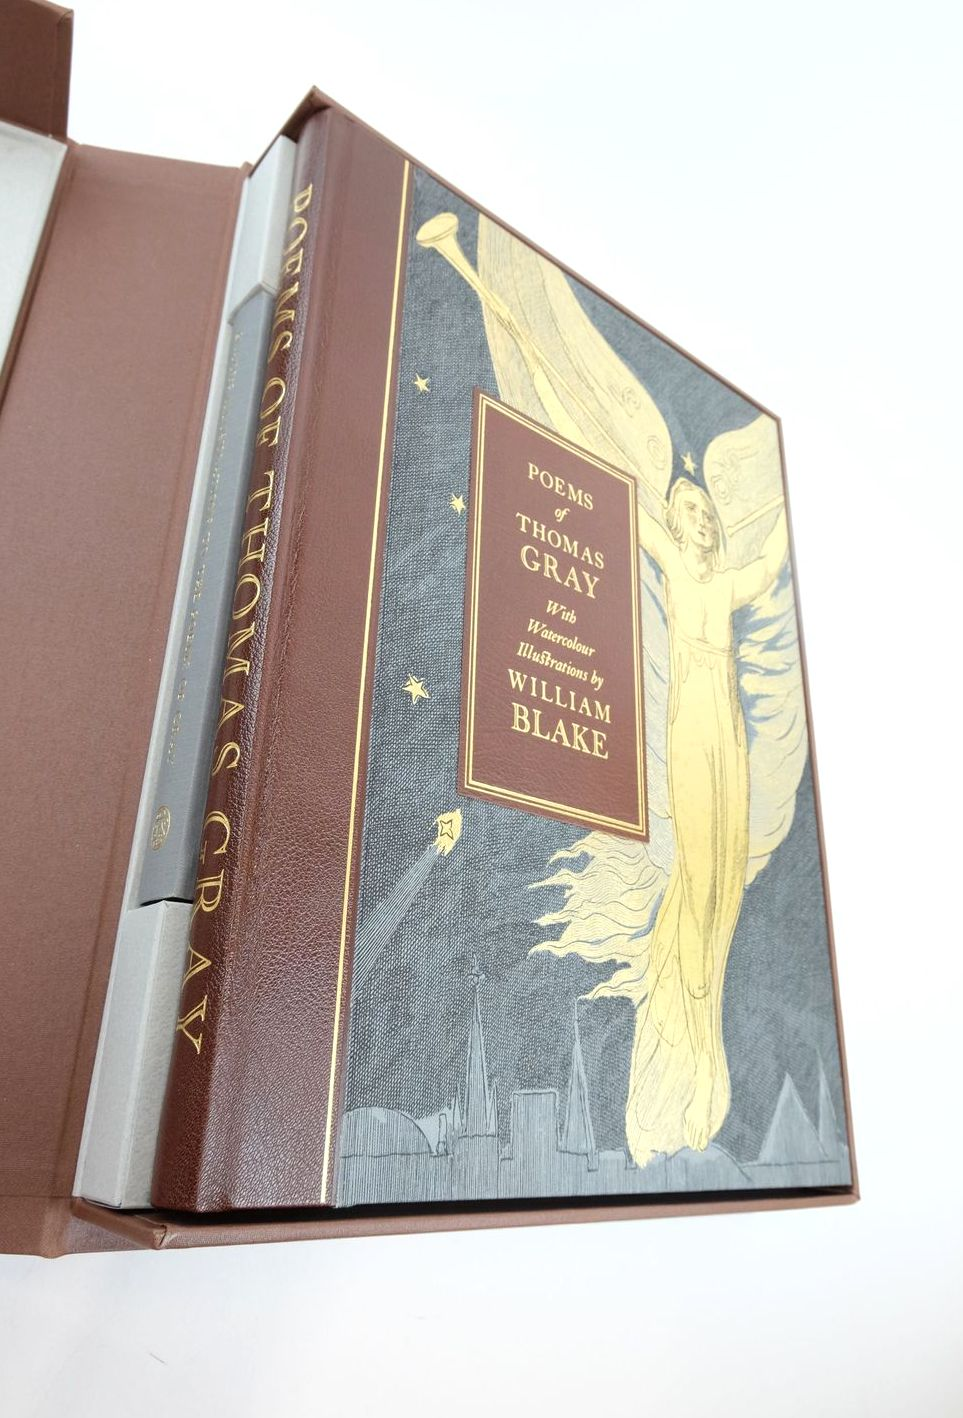 Photo of POEMS OF THOMAS GRAY written by Gray, Thomas Tayler, Irene illustrated by Blake, William published by Folio Society (STOCK CODE: 1821644)  for sale by Stella & Rose's Books